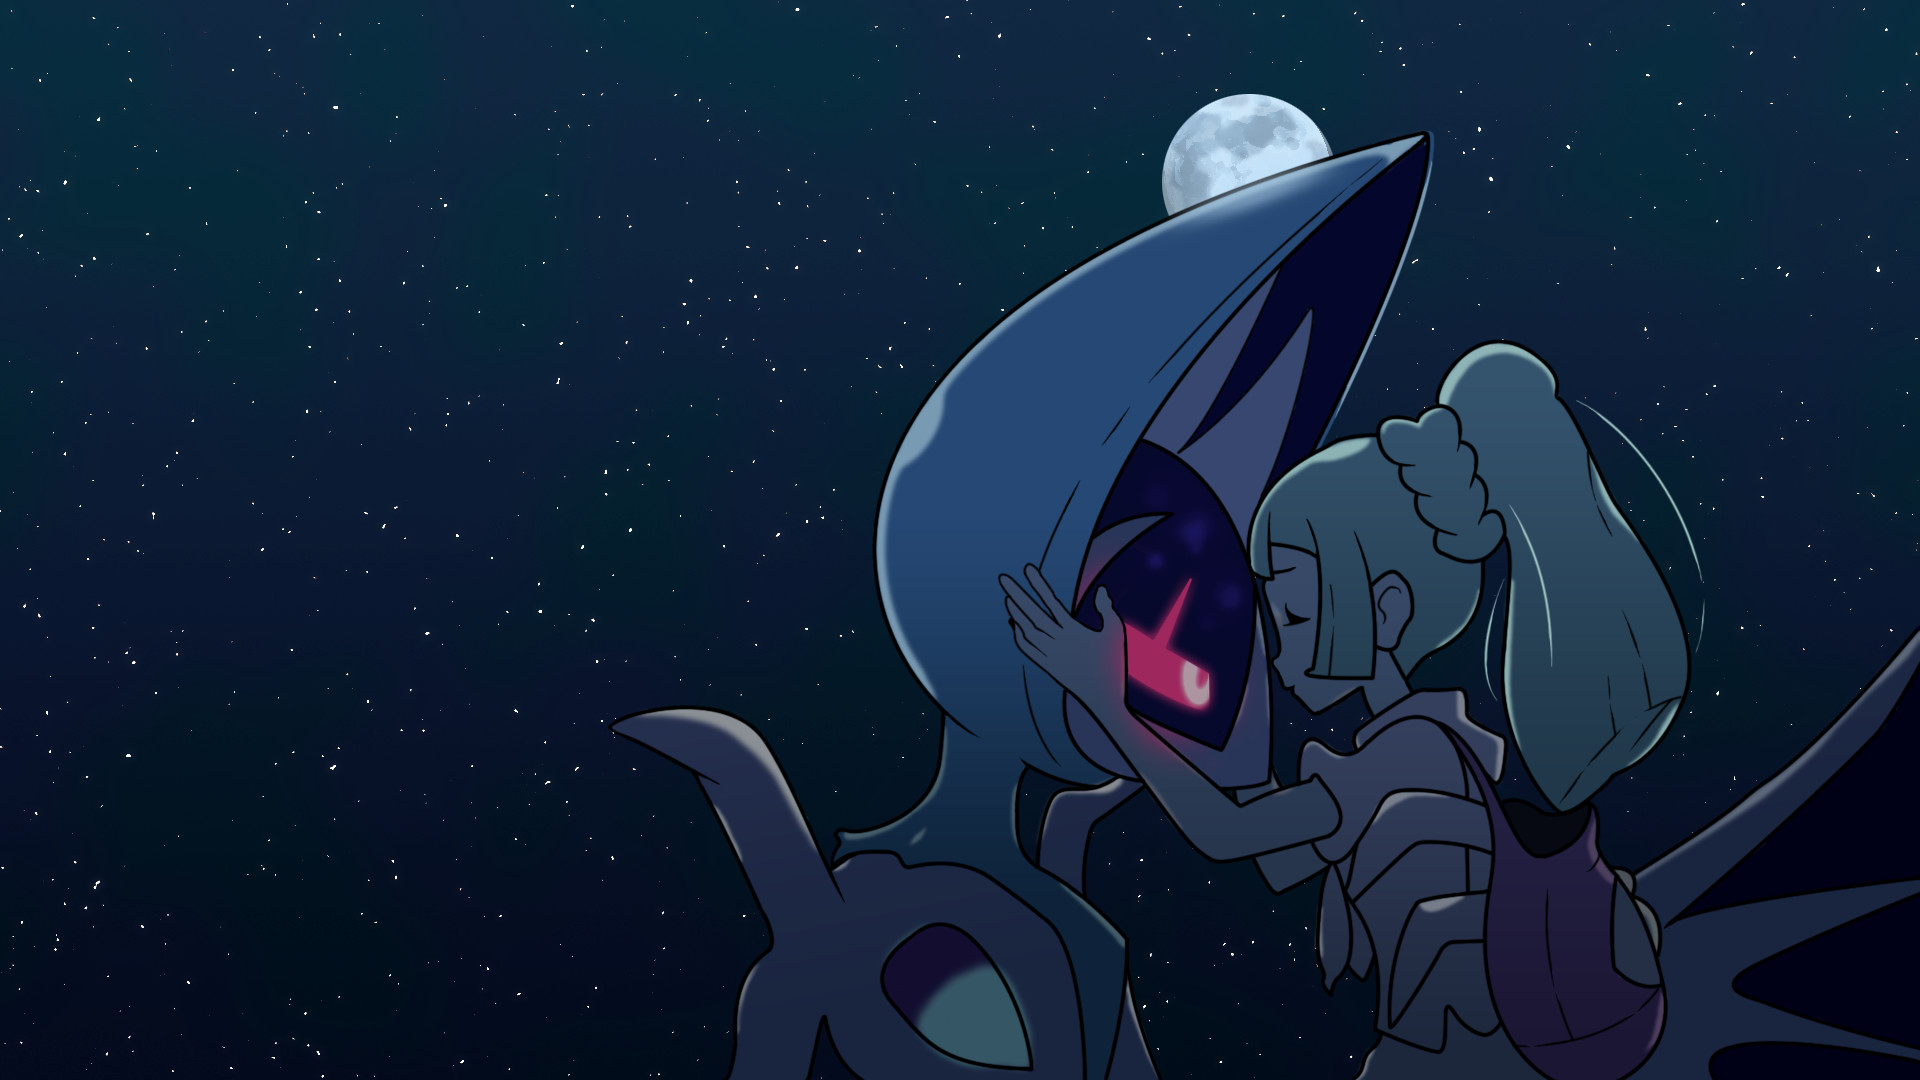 1920x1080 I recreated the credits image of Lillie and Lunala, and made a wallpaper  out of it. - Album on Imgur